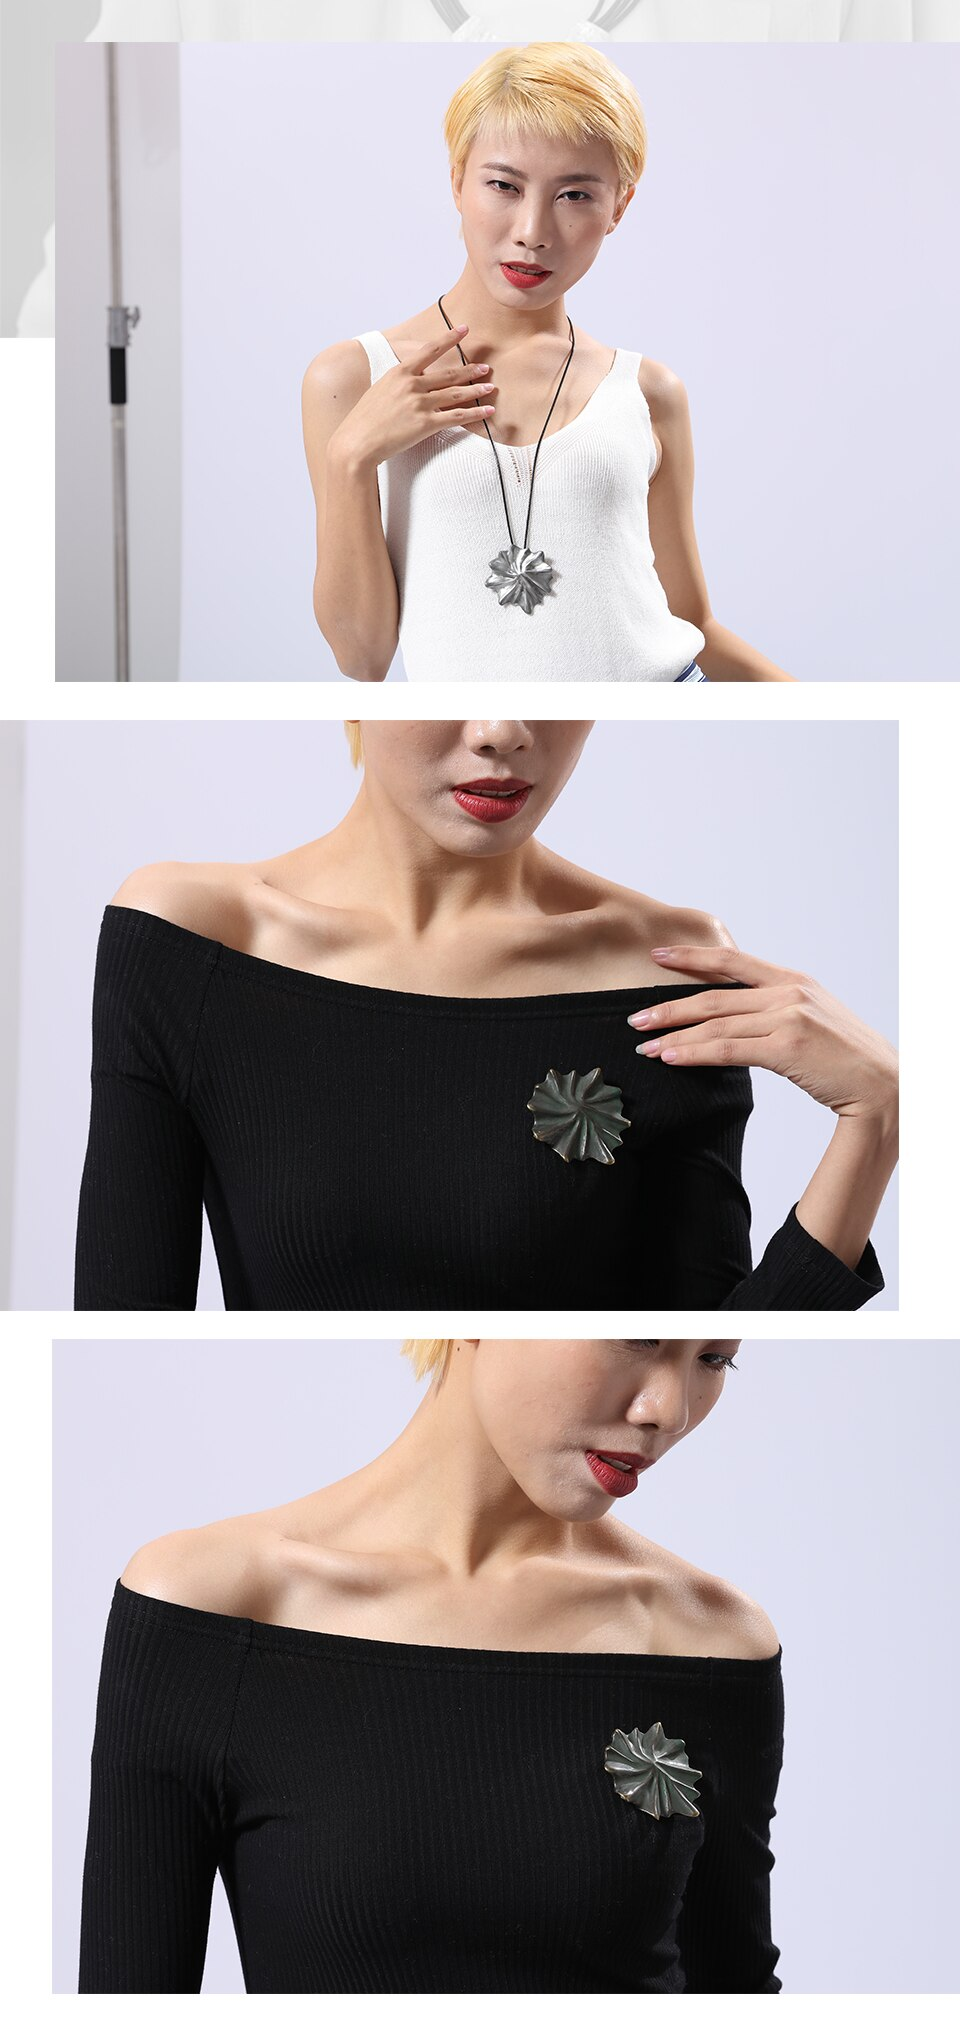 2020 Fashion Women's Pendant Necklaces Jewelry Bijouterie Neck Choker Long Chain Female Initial Suspension Decoration for Gifts